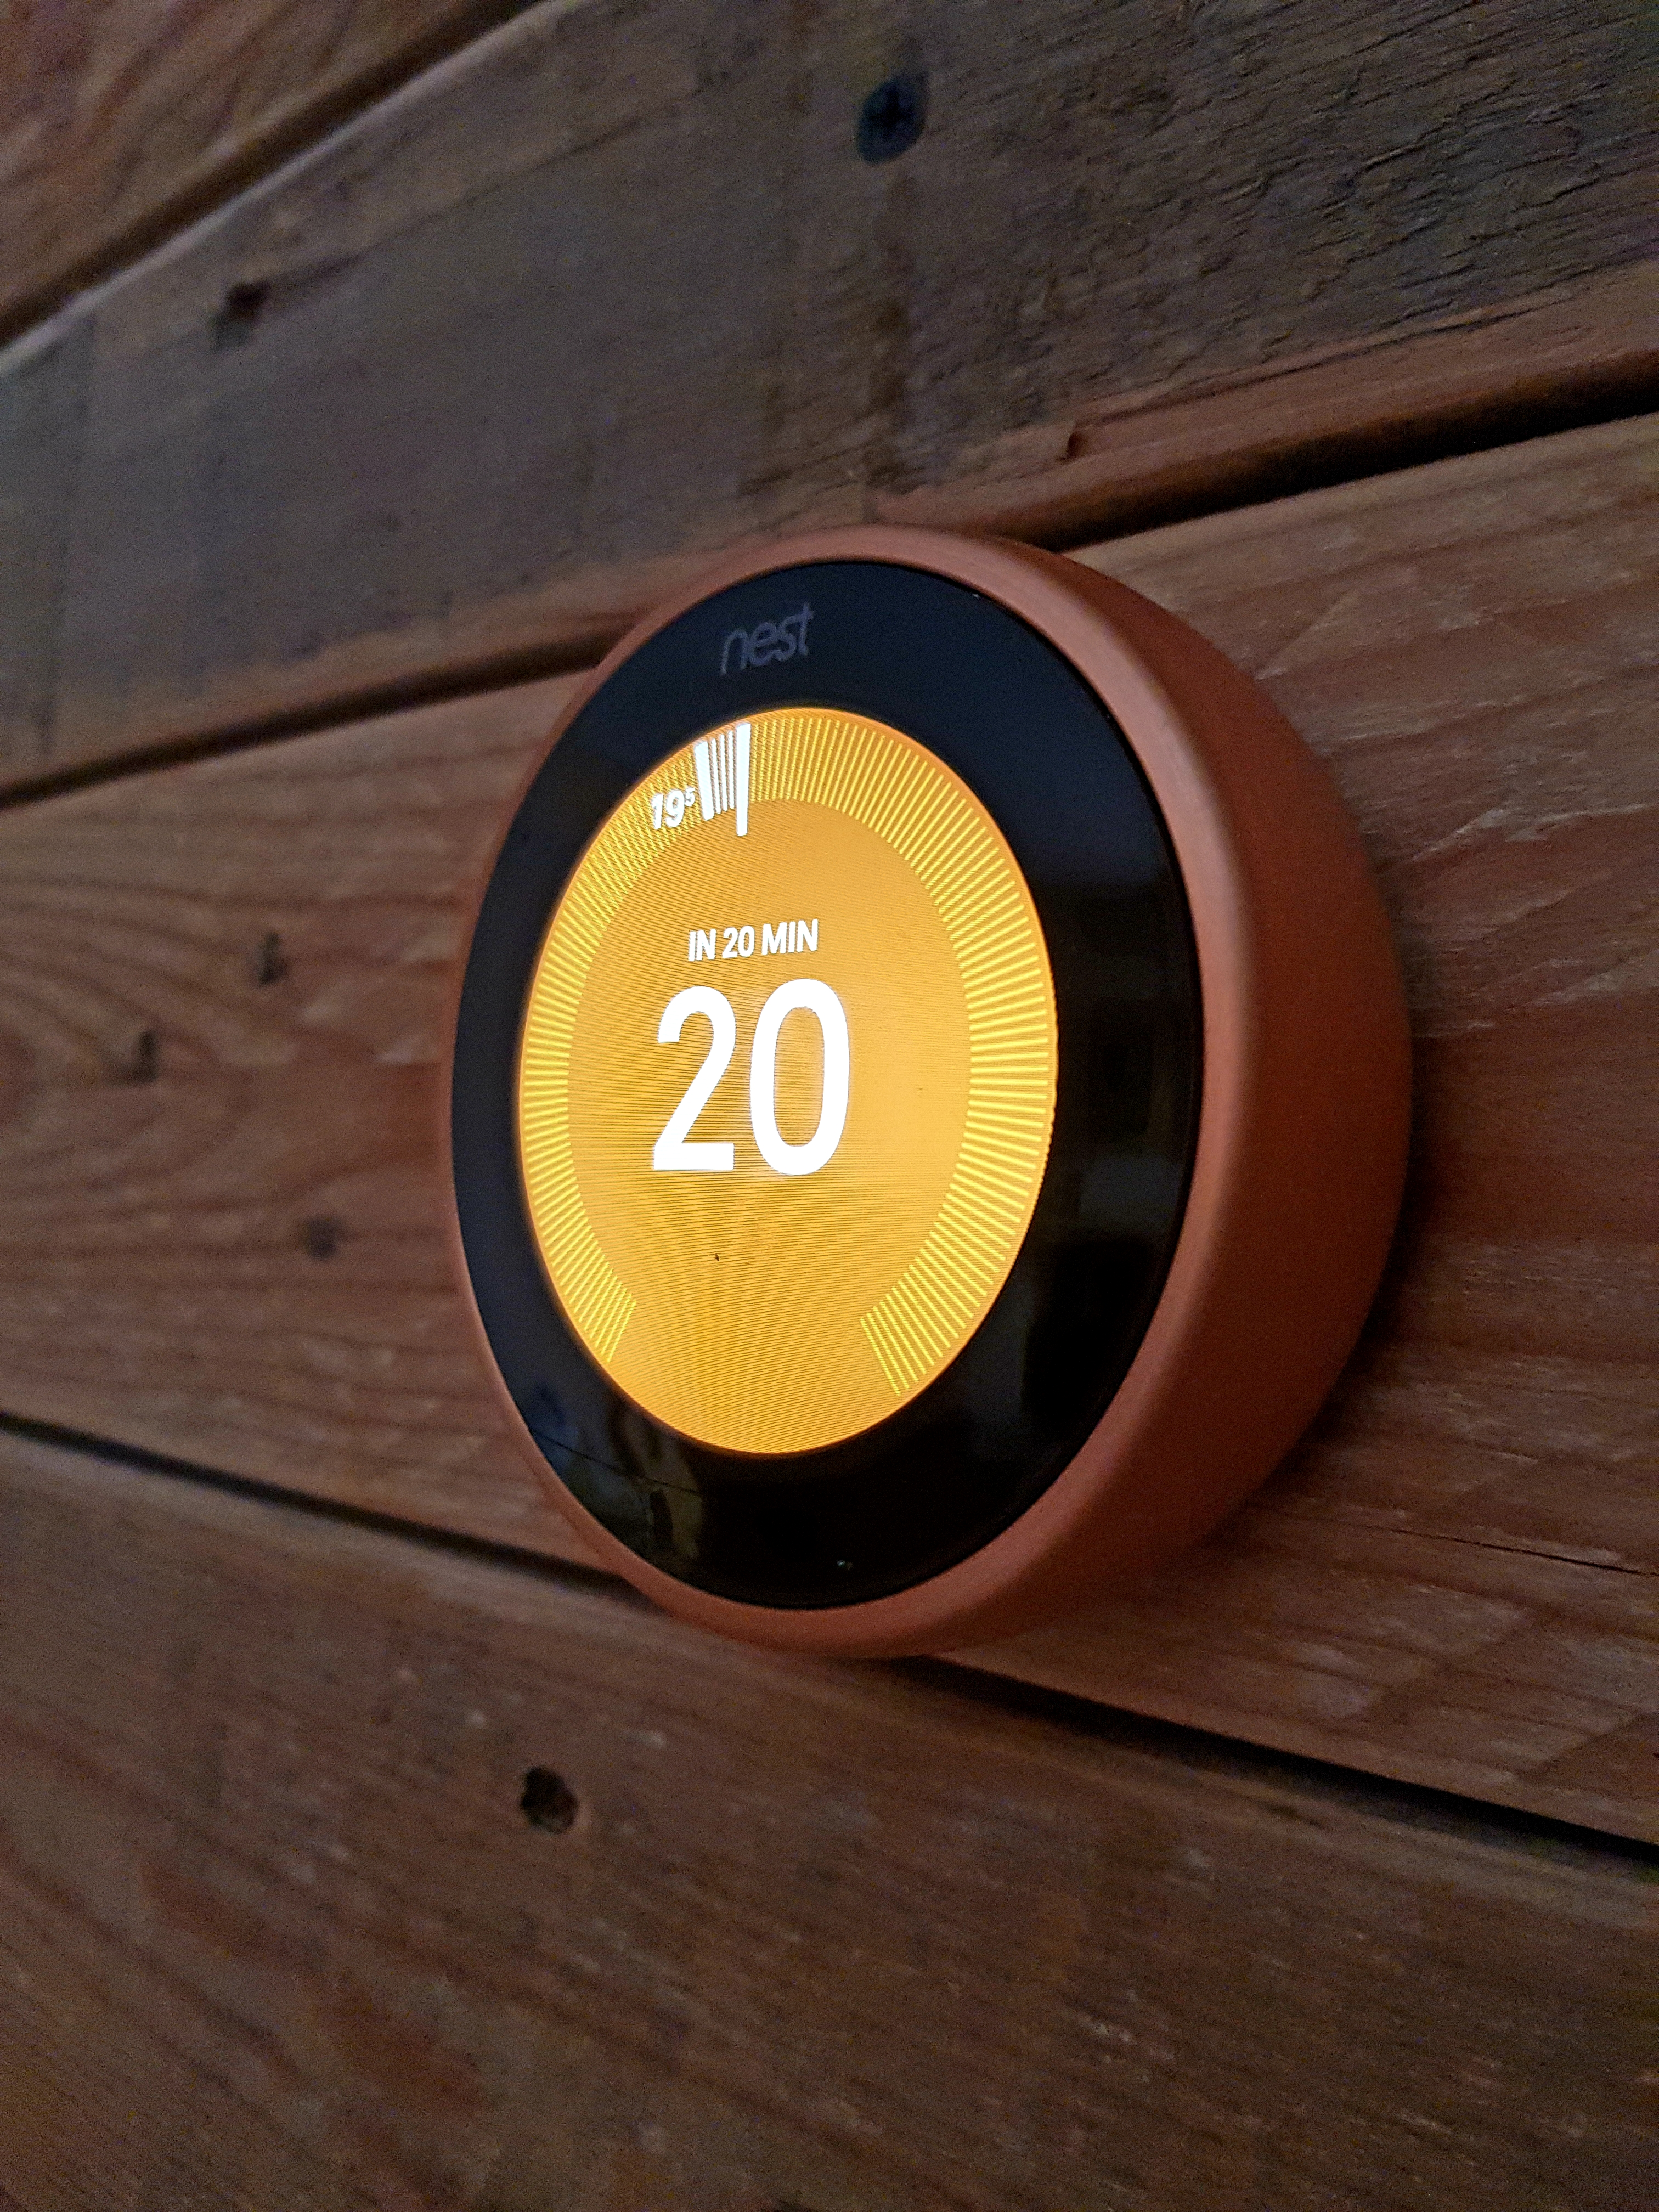 Nest Smart Thermostat Installer Hull, Google Nest Pro, Hull Electrician, Electrician in Hull